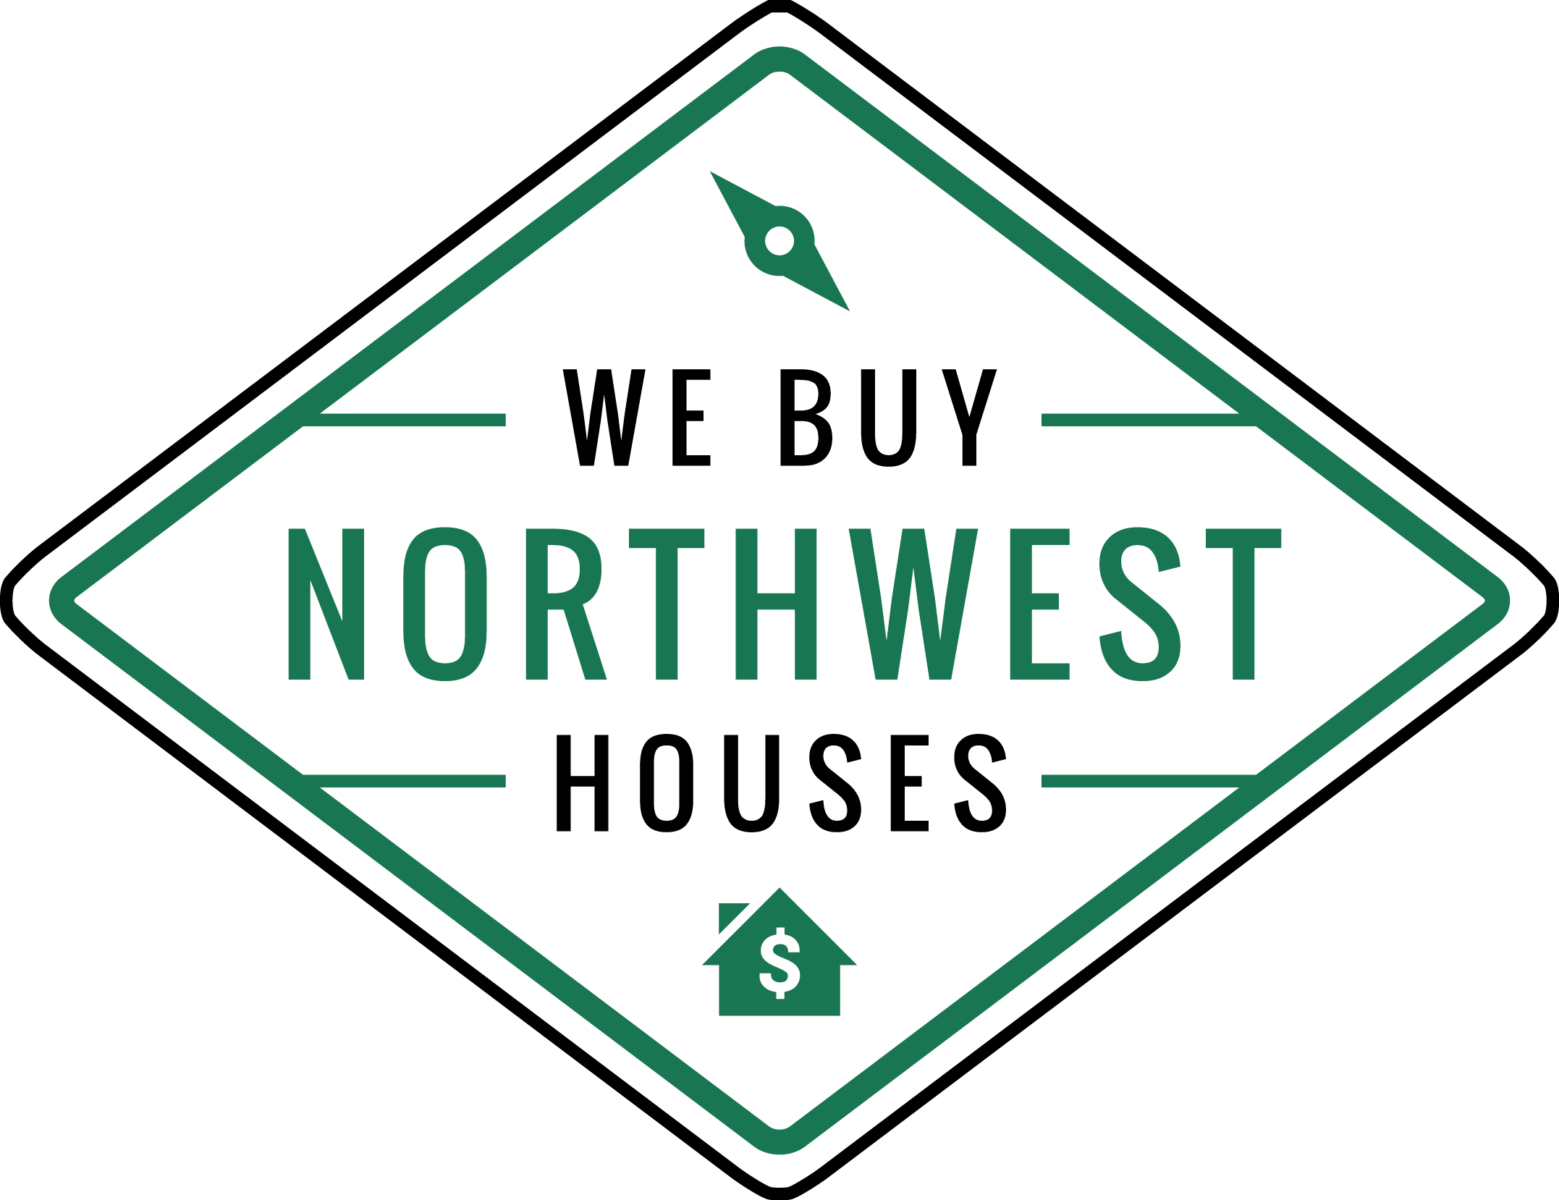 We Buy Northwest Houses  logo